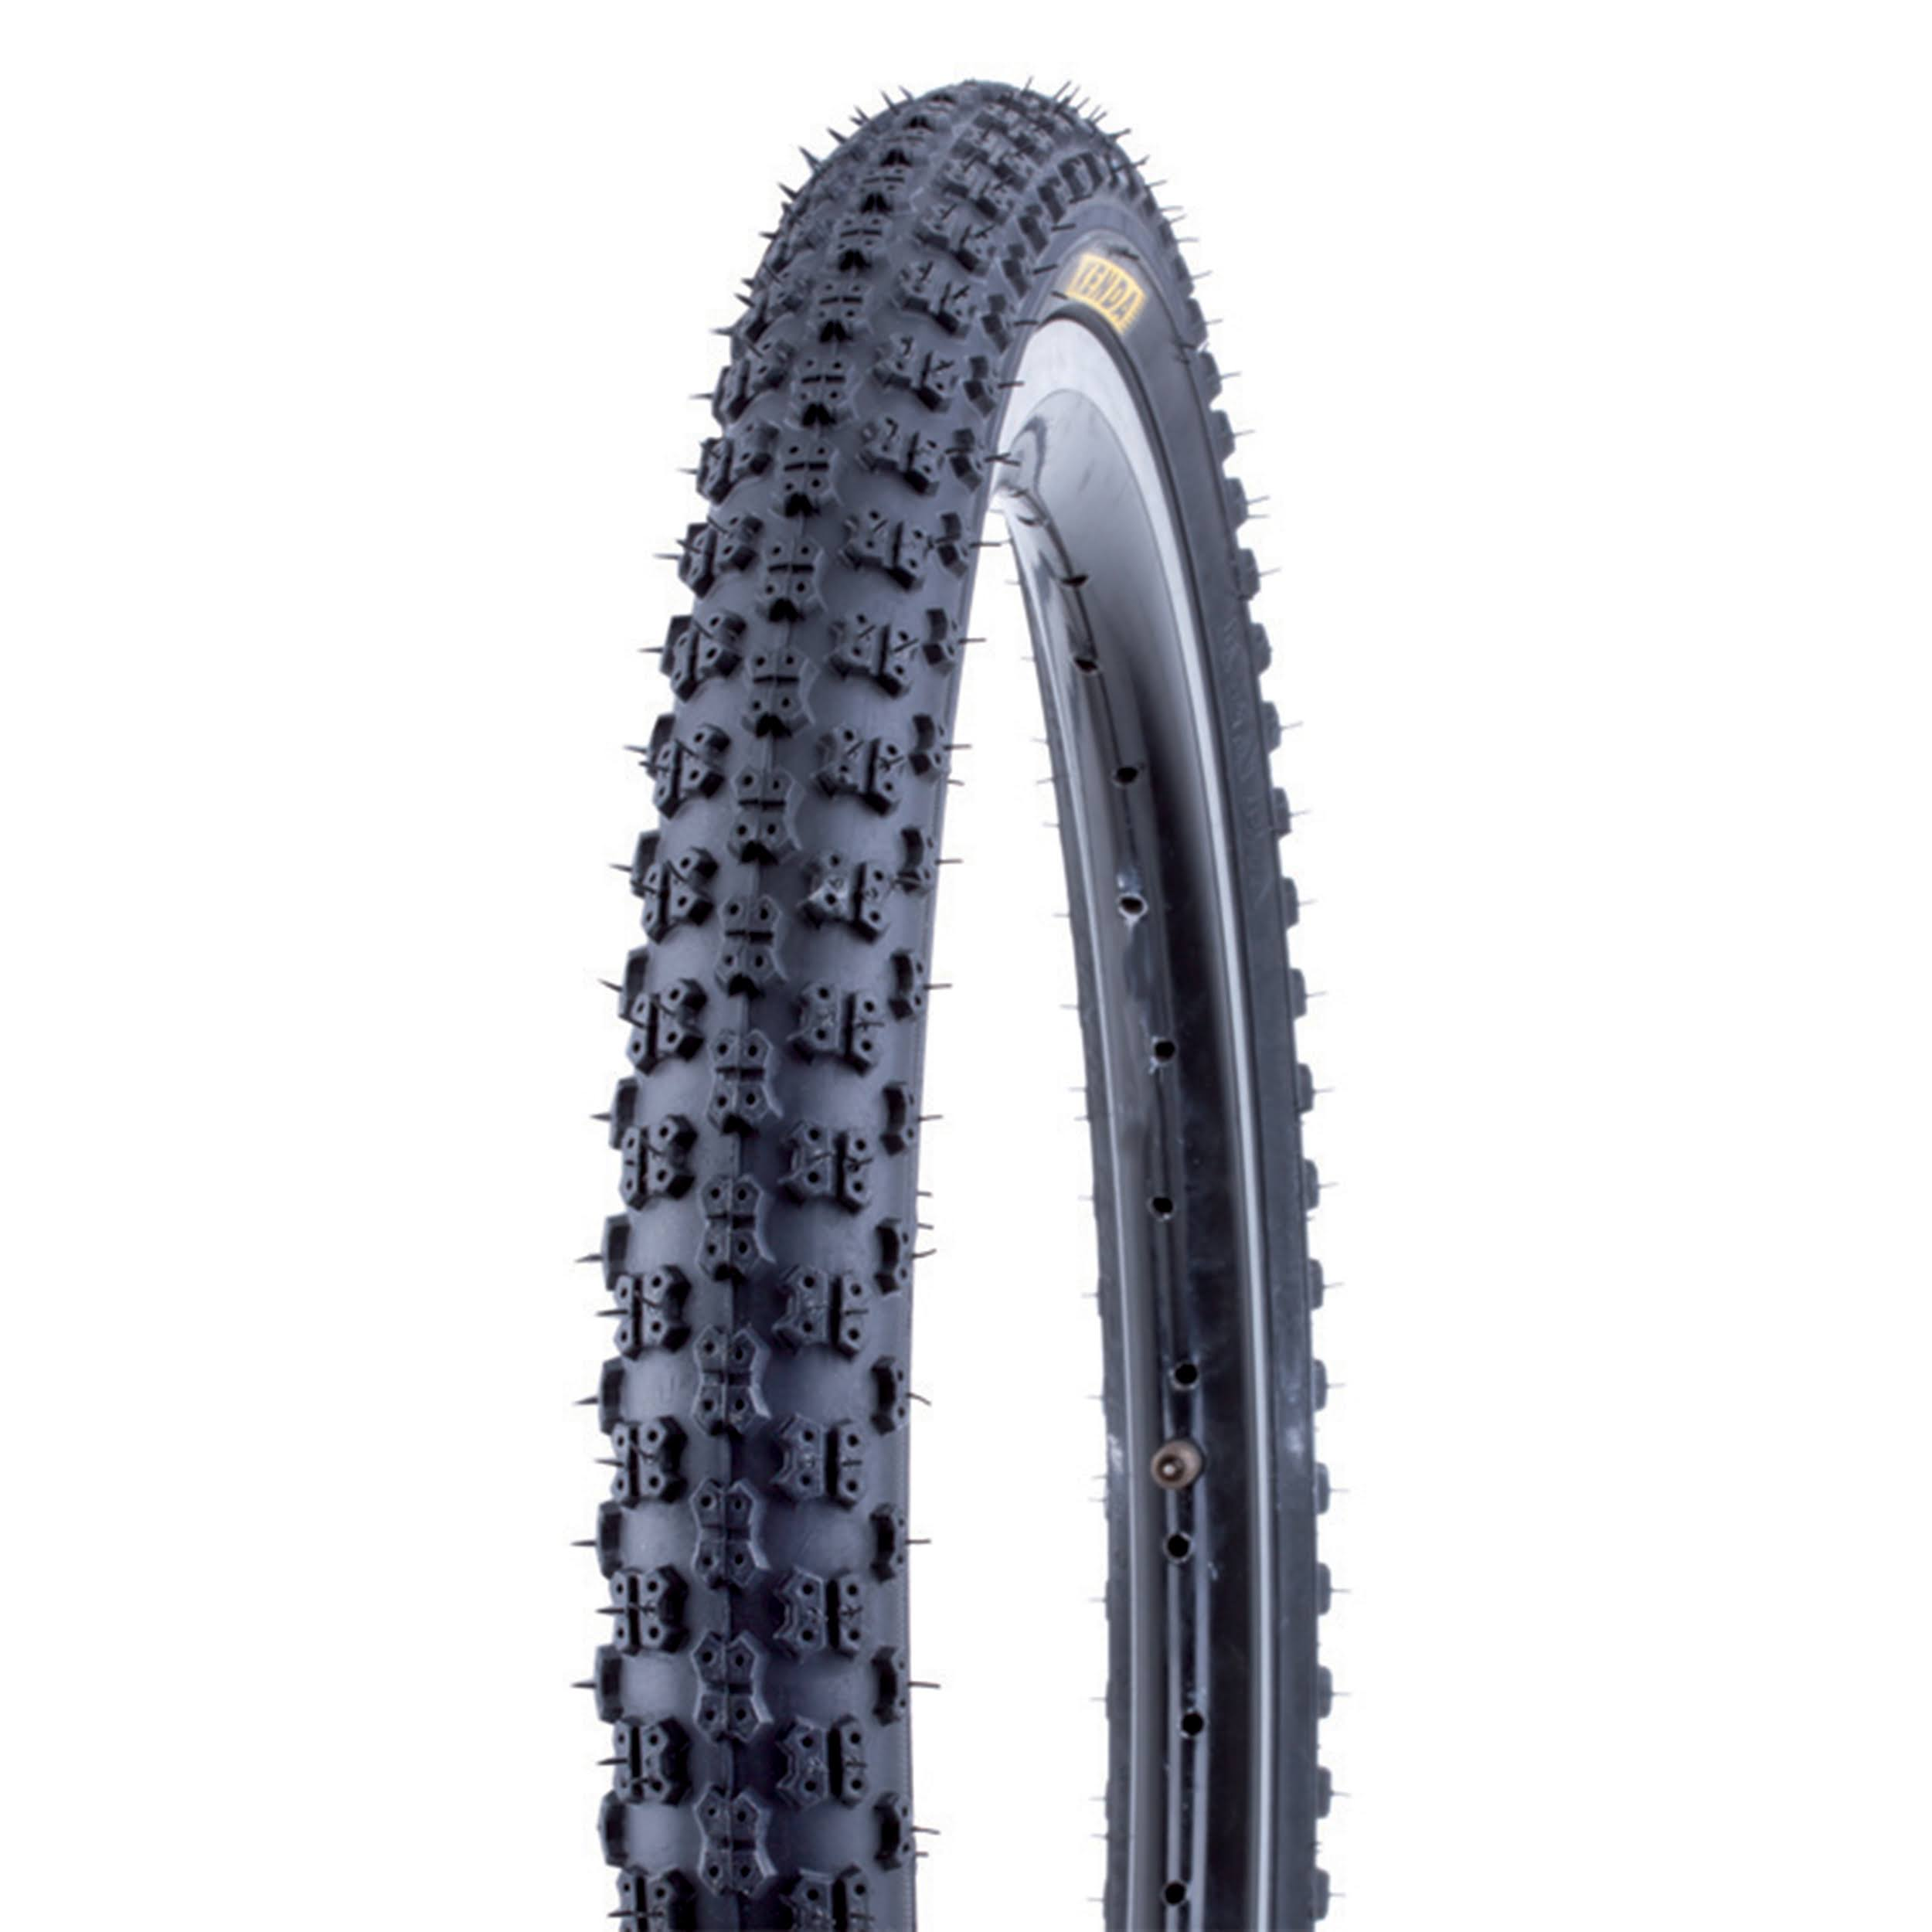 Kenda K50 Black Bicycle Tire